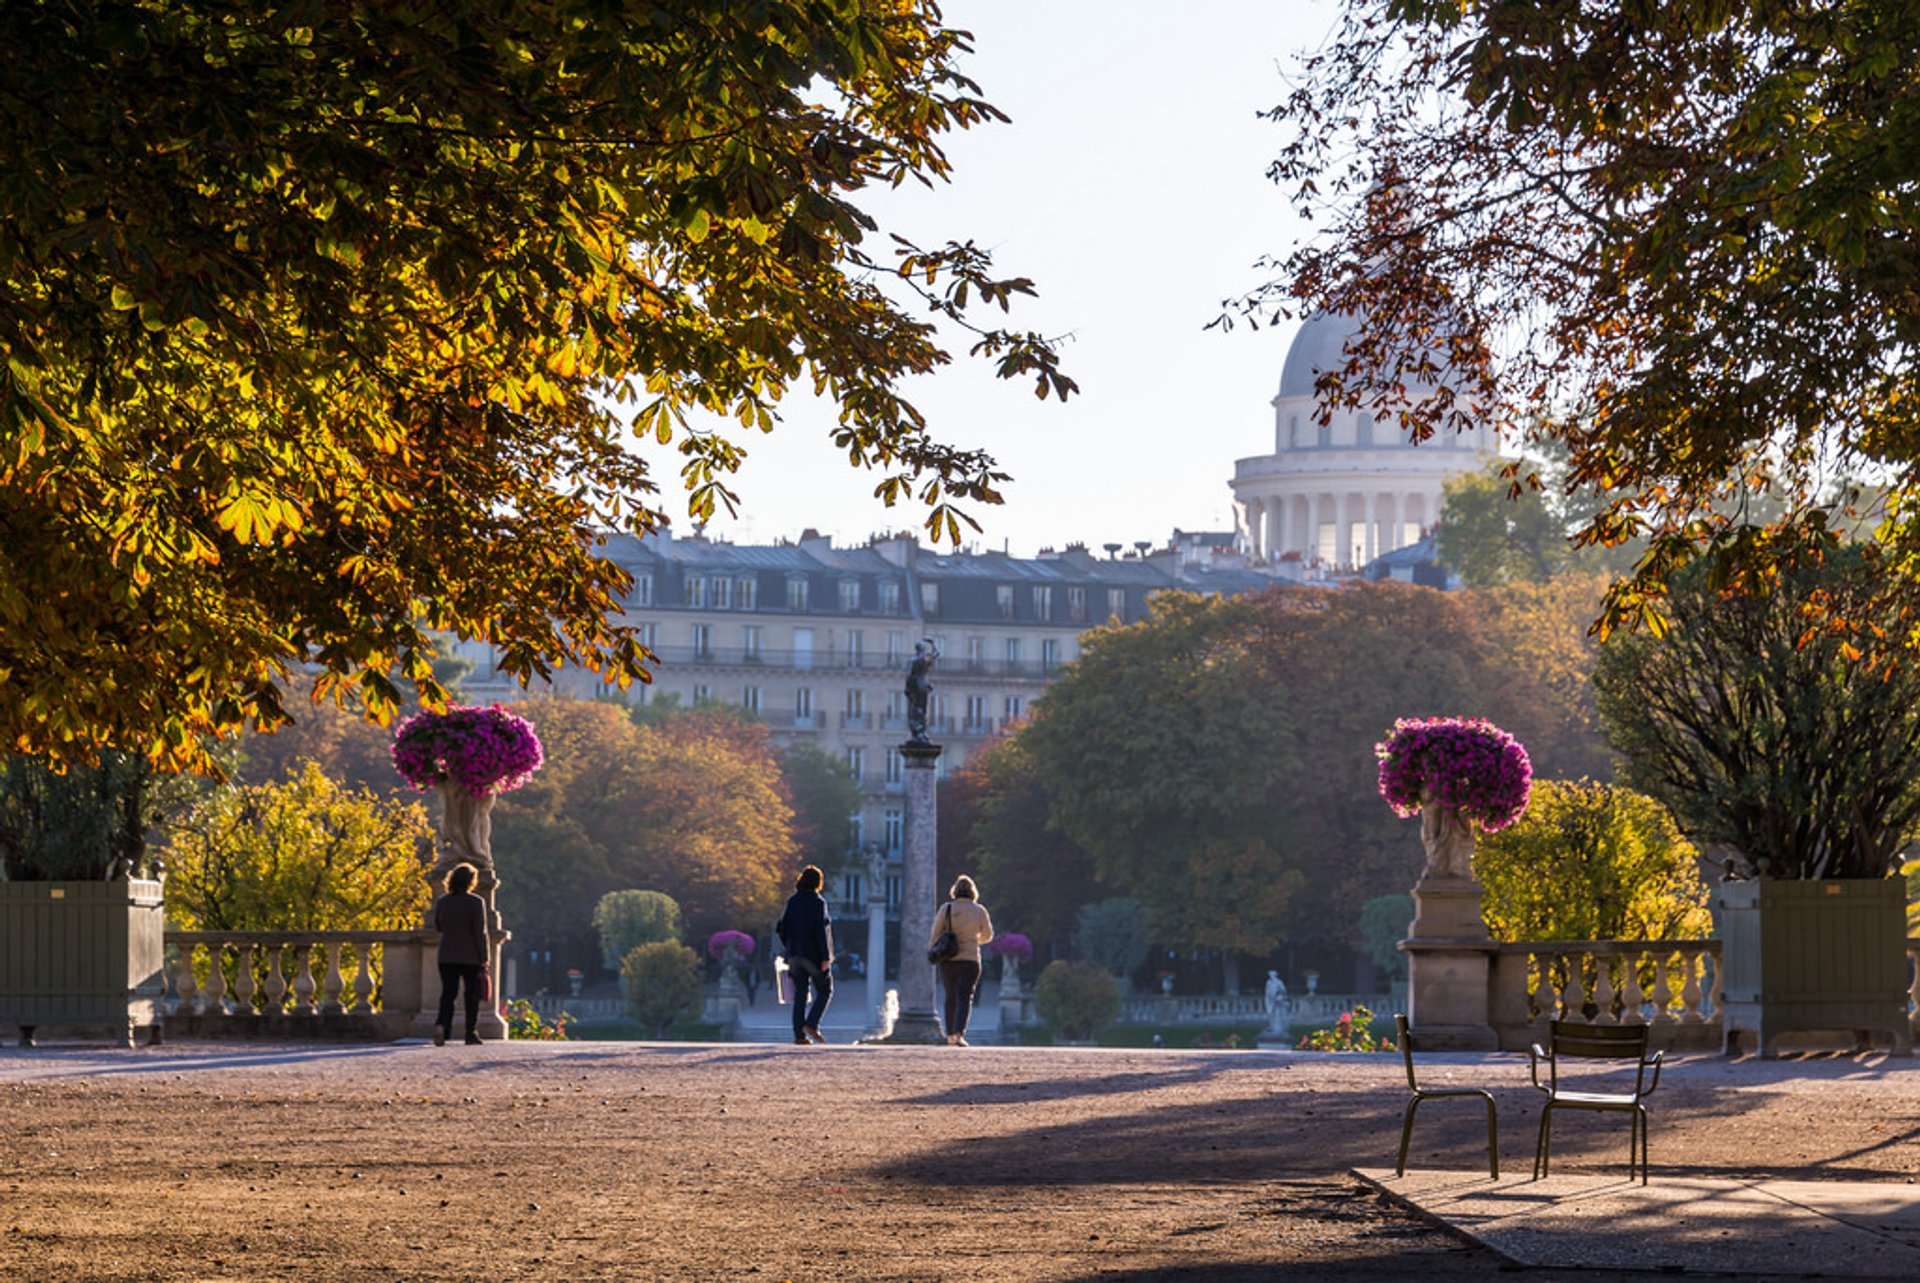 Autumn in the Luxembourg Garden 2019